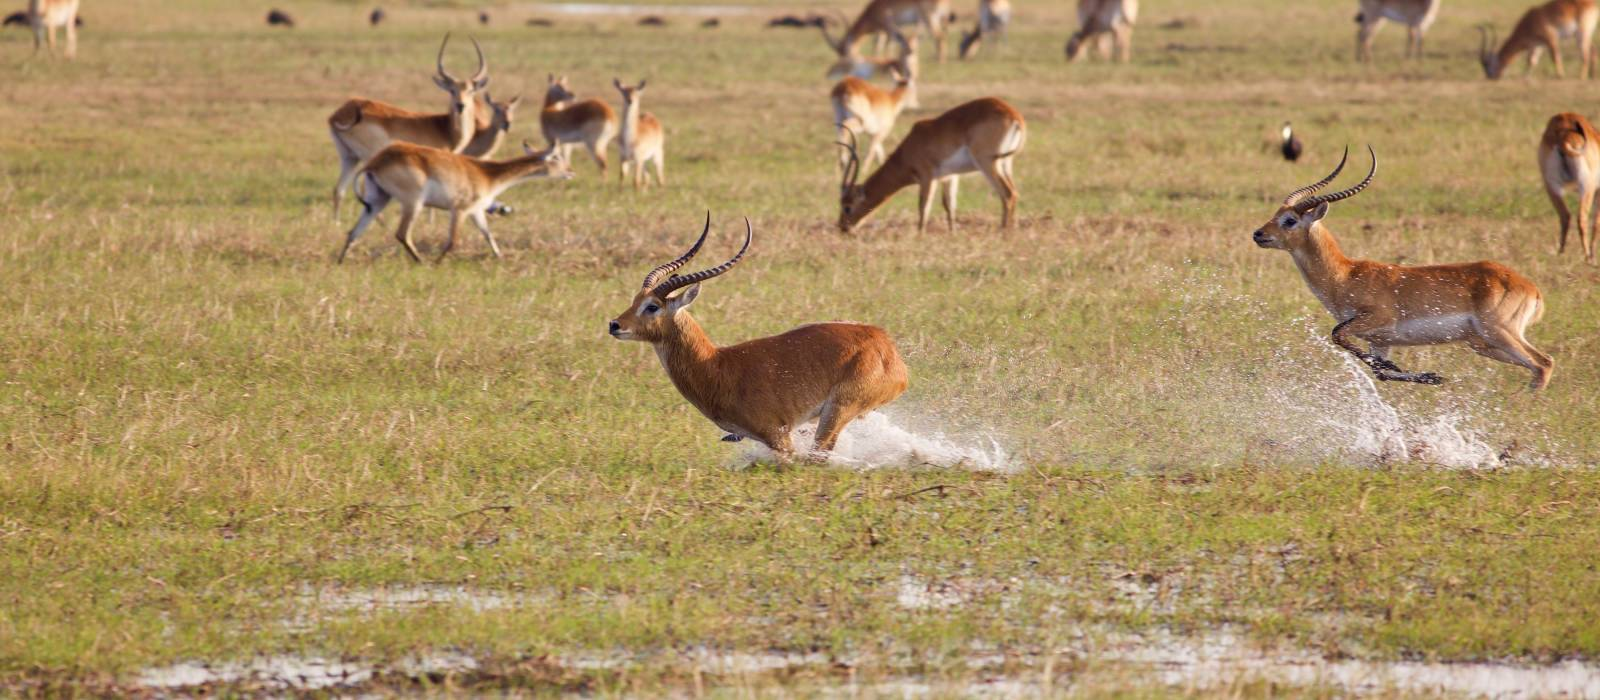 Kafue Flats lechwe (Kobus leche kafuensis) running in the water on the plains, Zambia, Africa